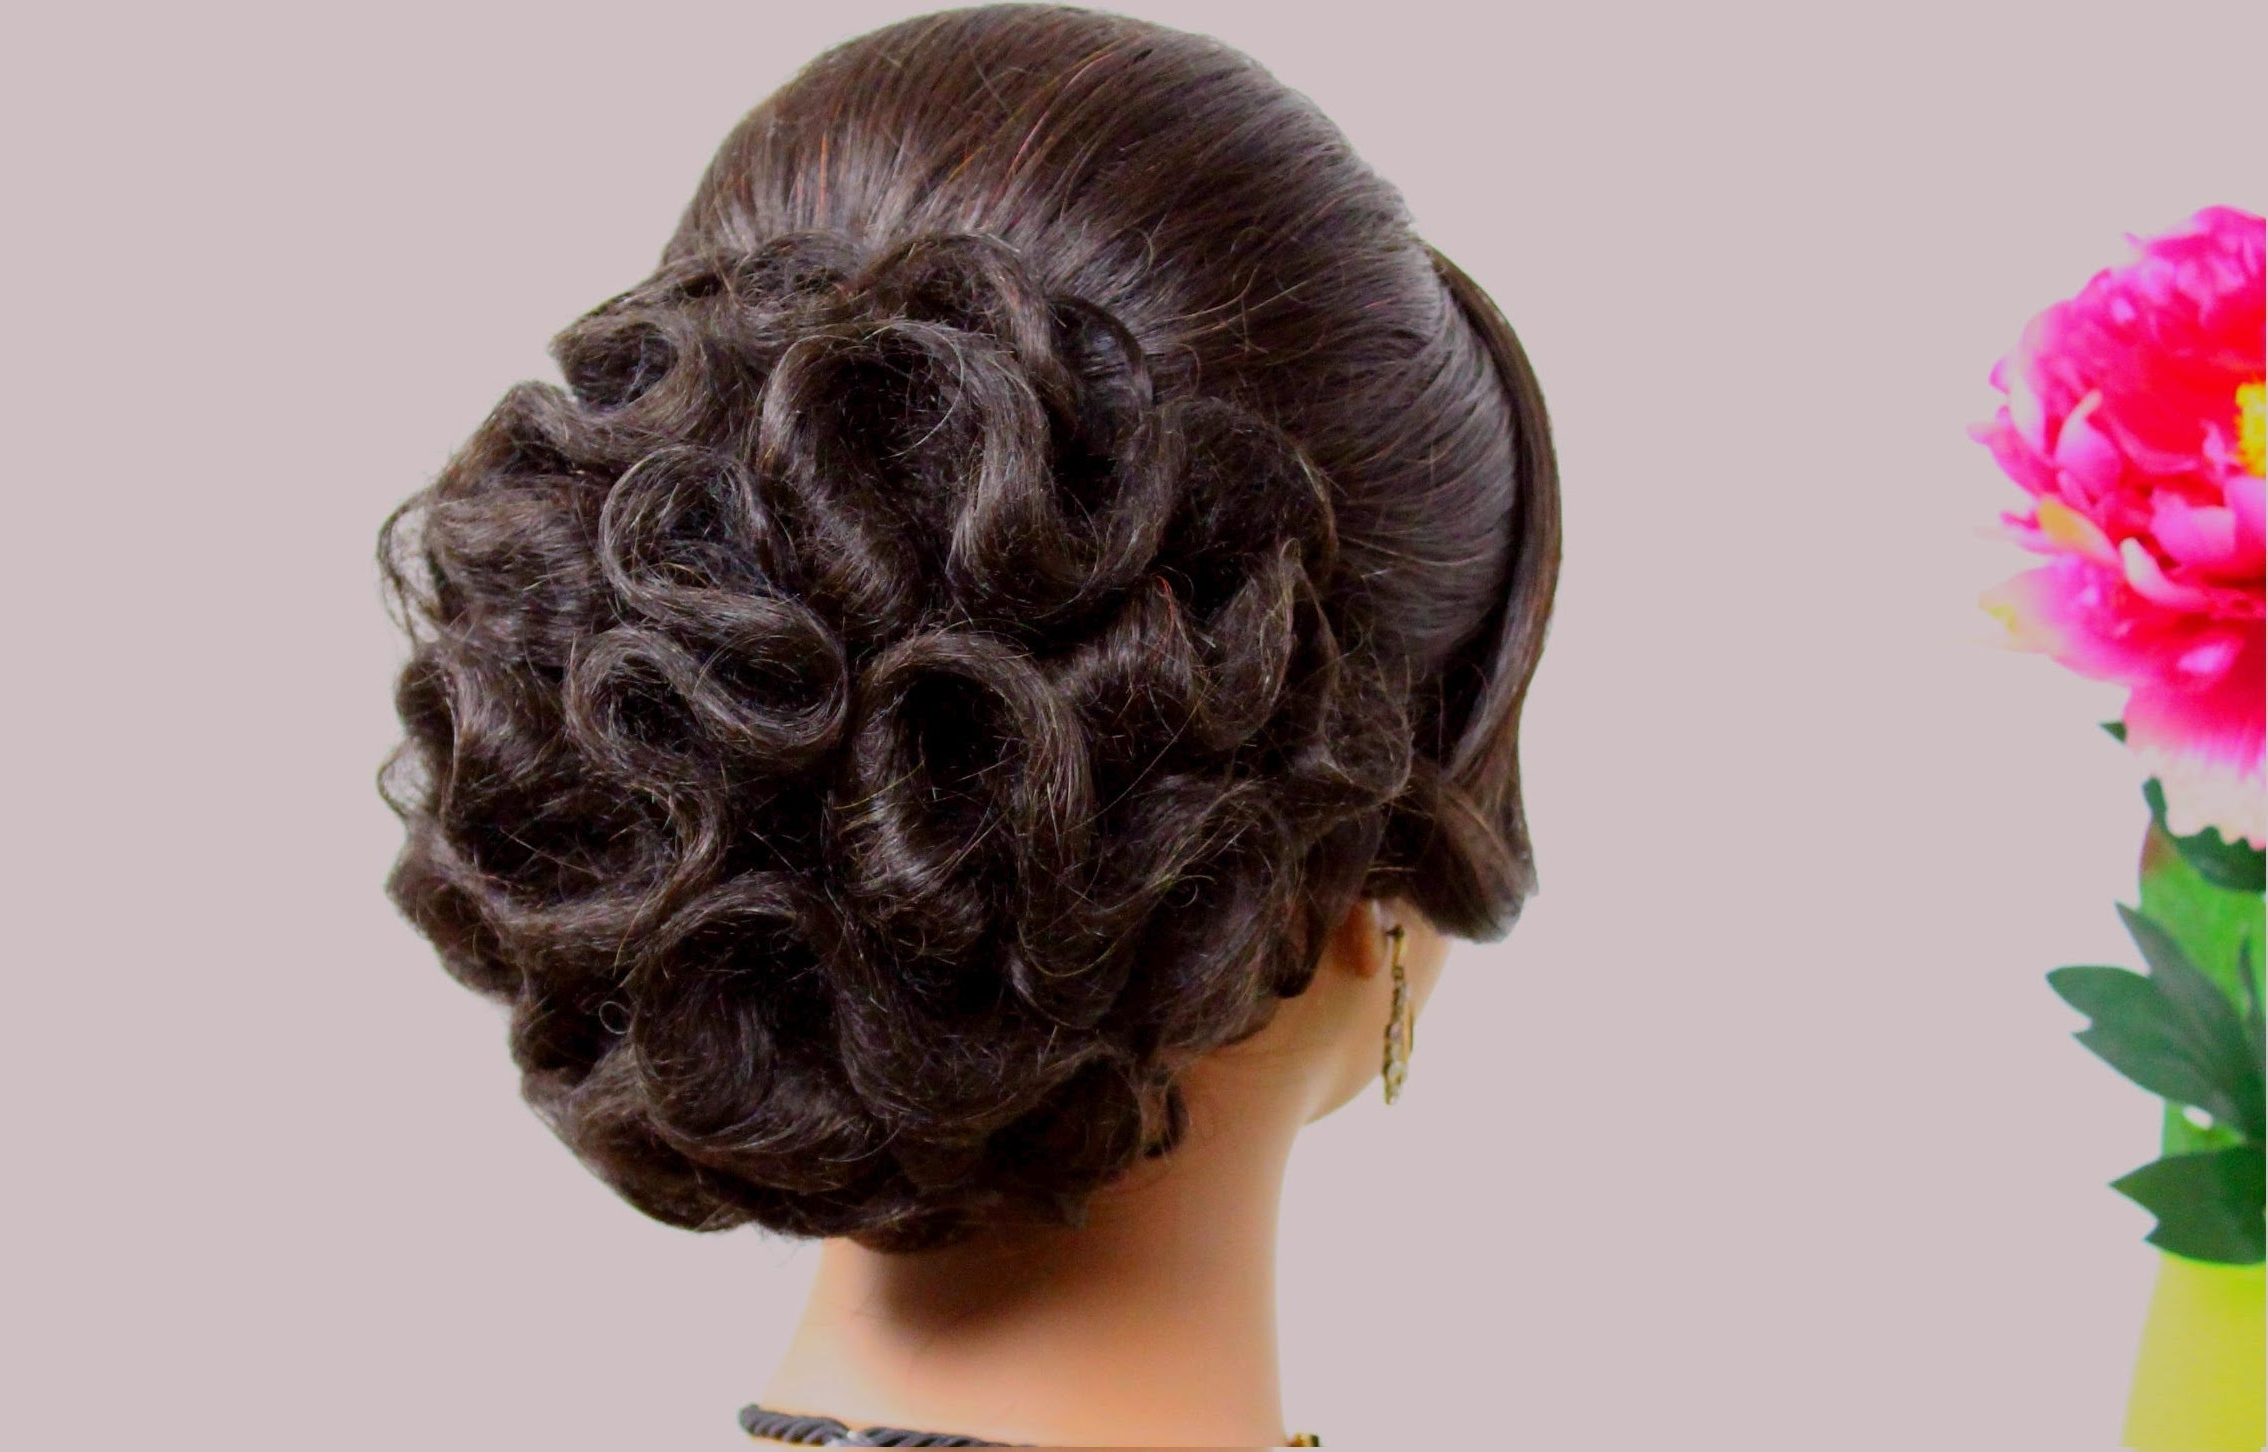 Bridal Hairstyle For Long Hair Tutorial (View 15 of 15)